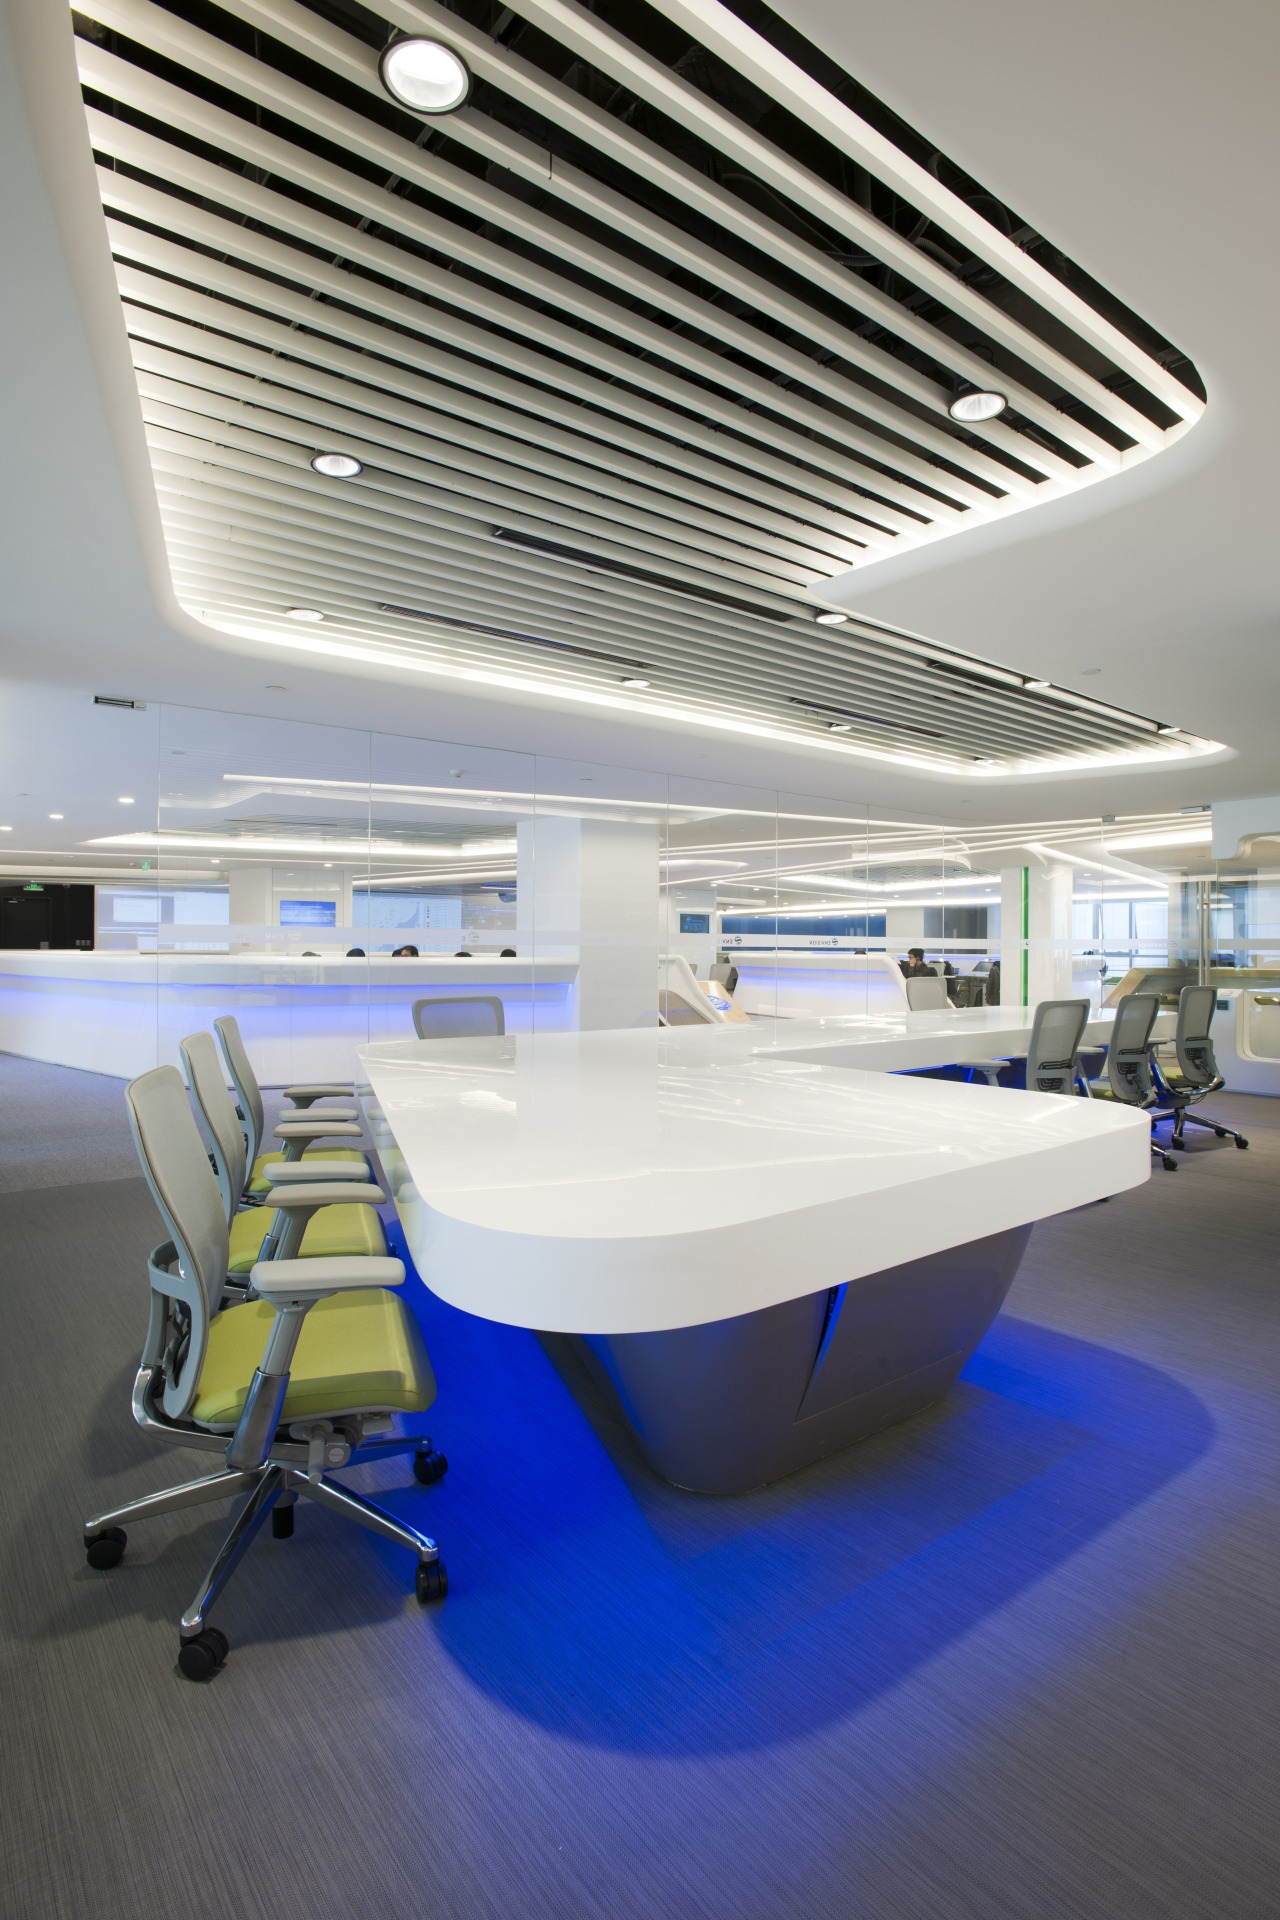 Exposed portions of the ceiling mimic the shape architecture, ceiling, daylighting, furniture, interior design, lighting, office, product design, table, gray